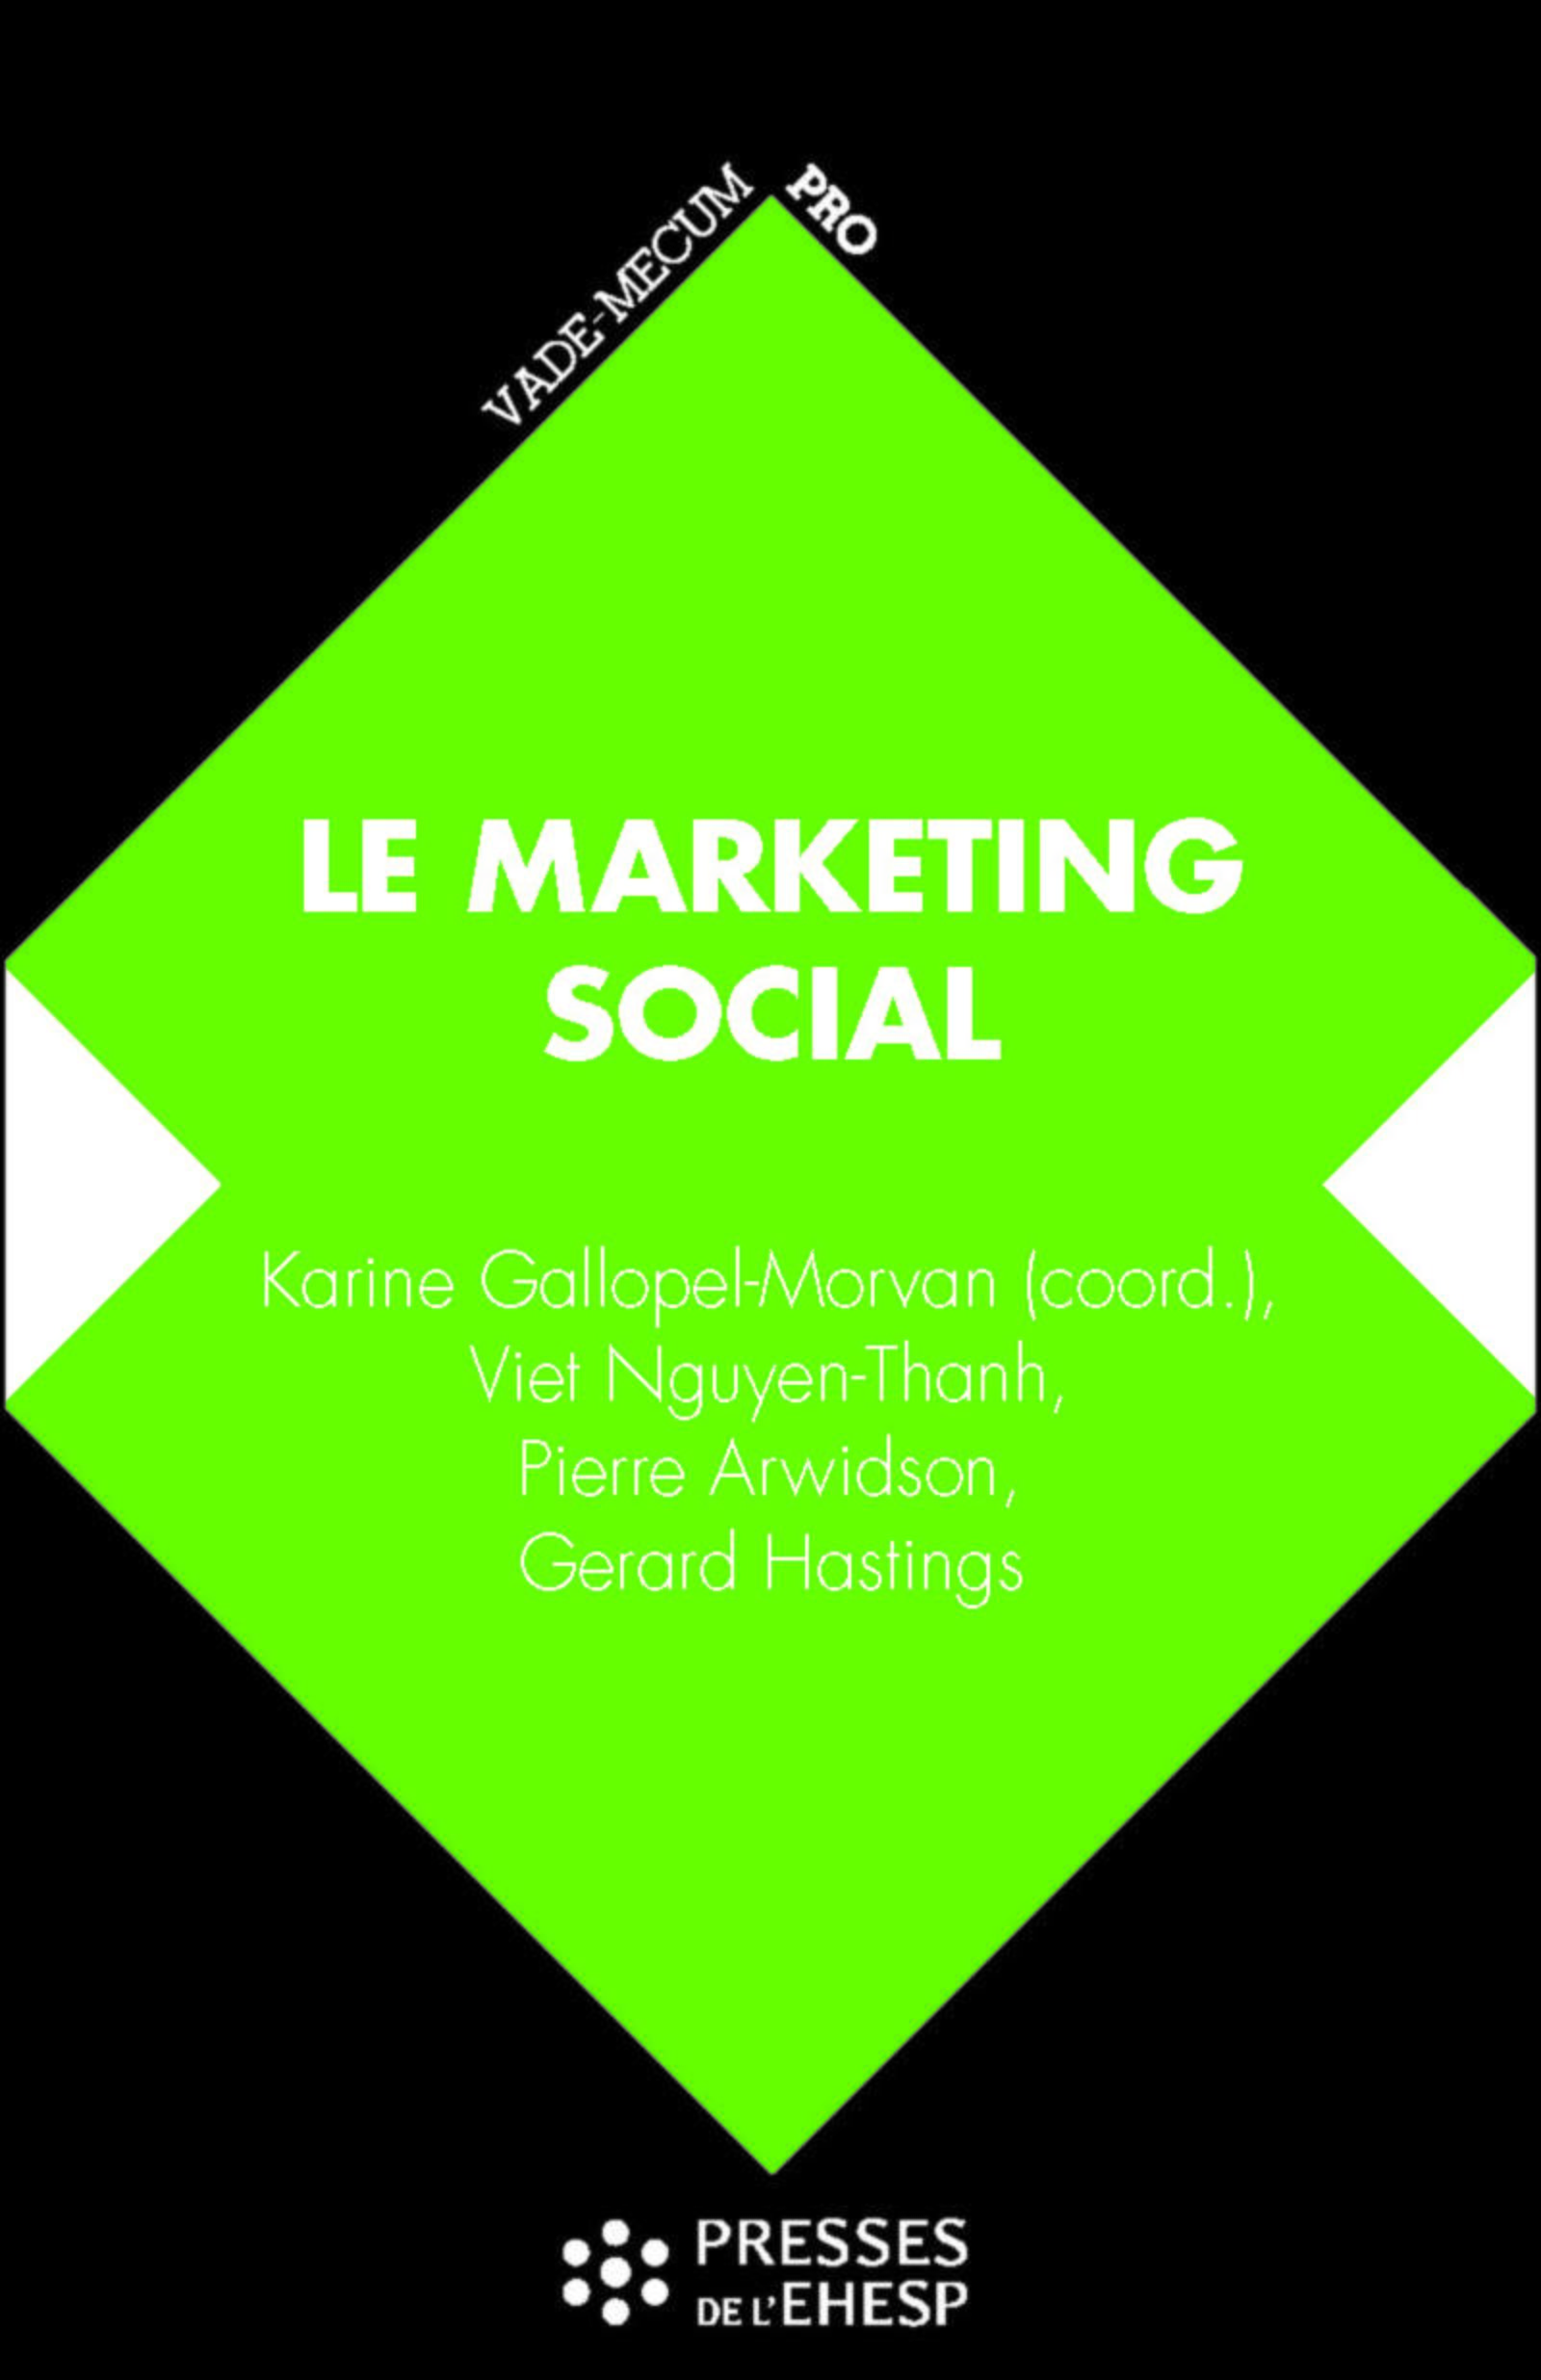 MARKETING SOCIAL - DE LA COMPREHENSION DES PUBLICS AU CHANGEMENT DE COMPORTEMENT